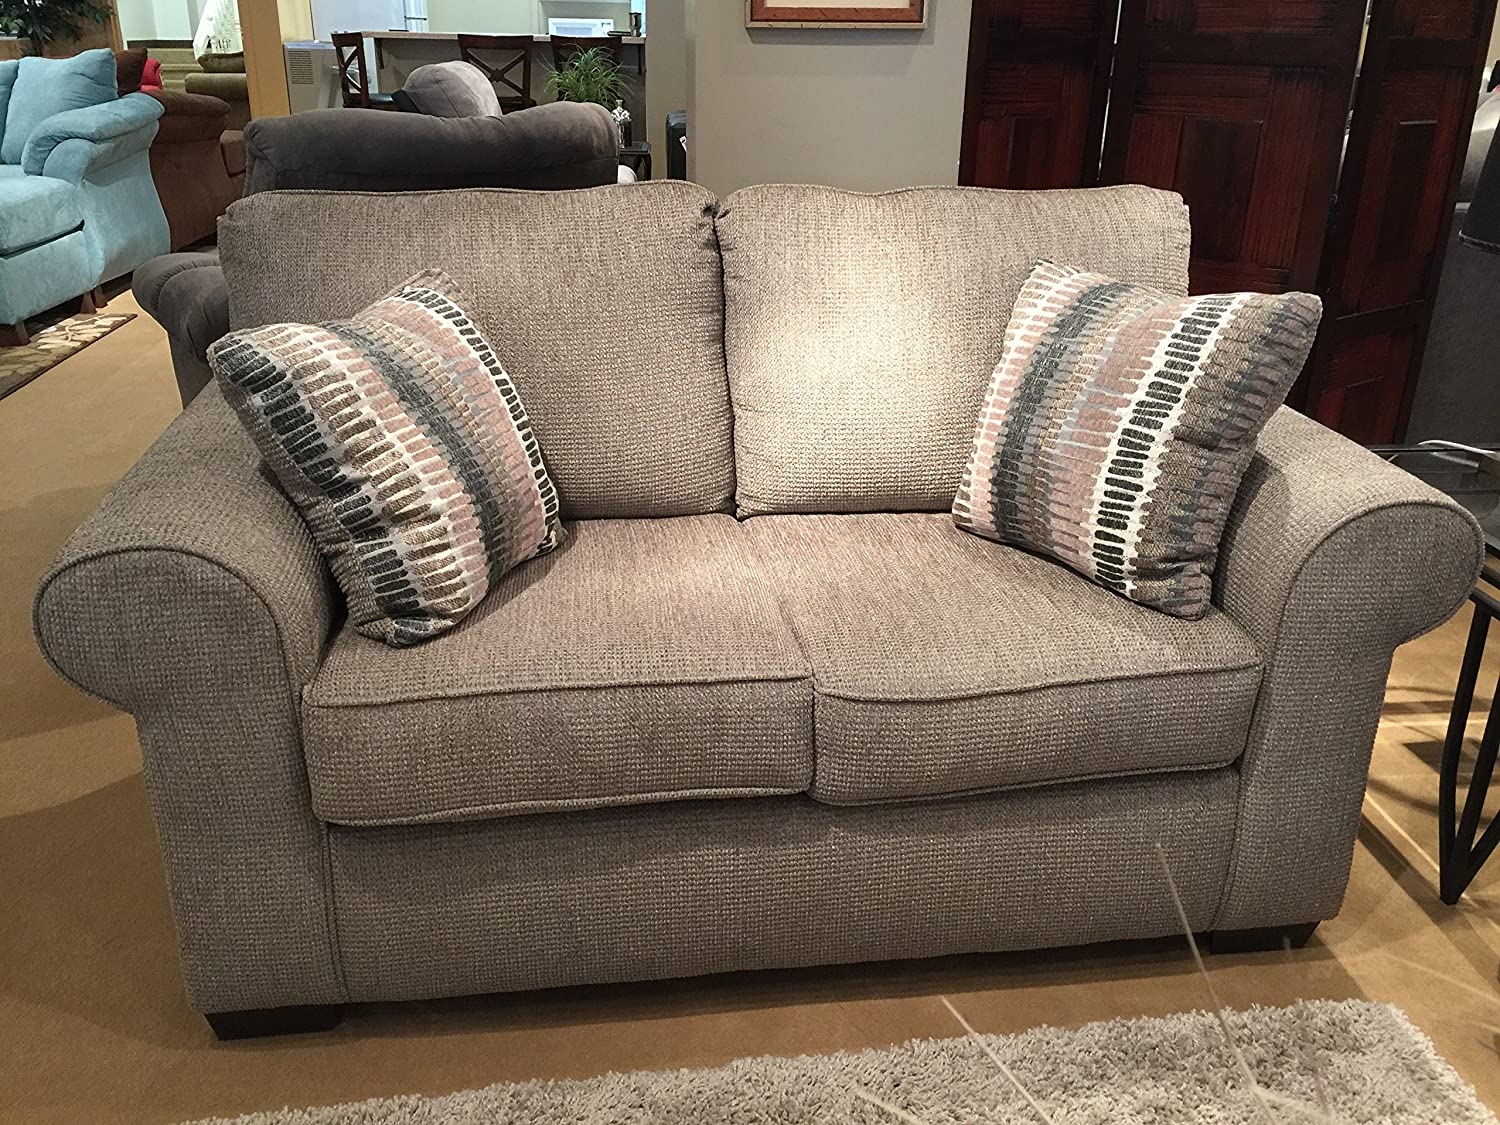 Heather Grey Fabric Loveseat w/2 Pillows  - Made In USA